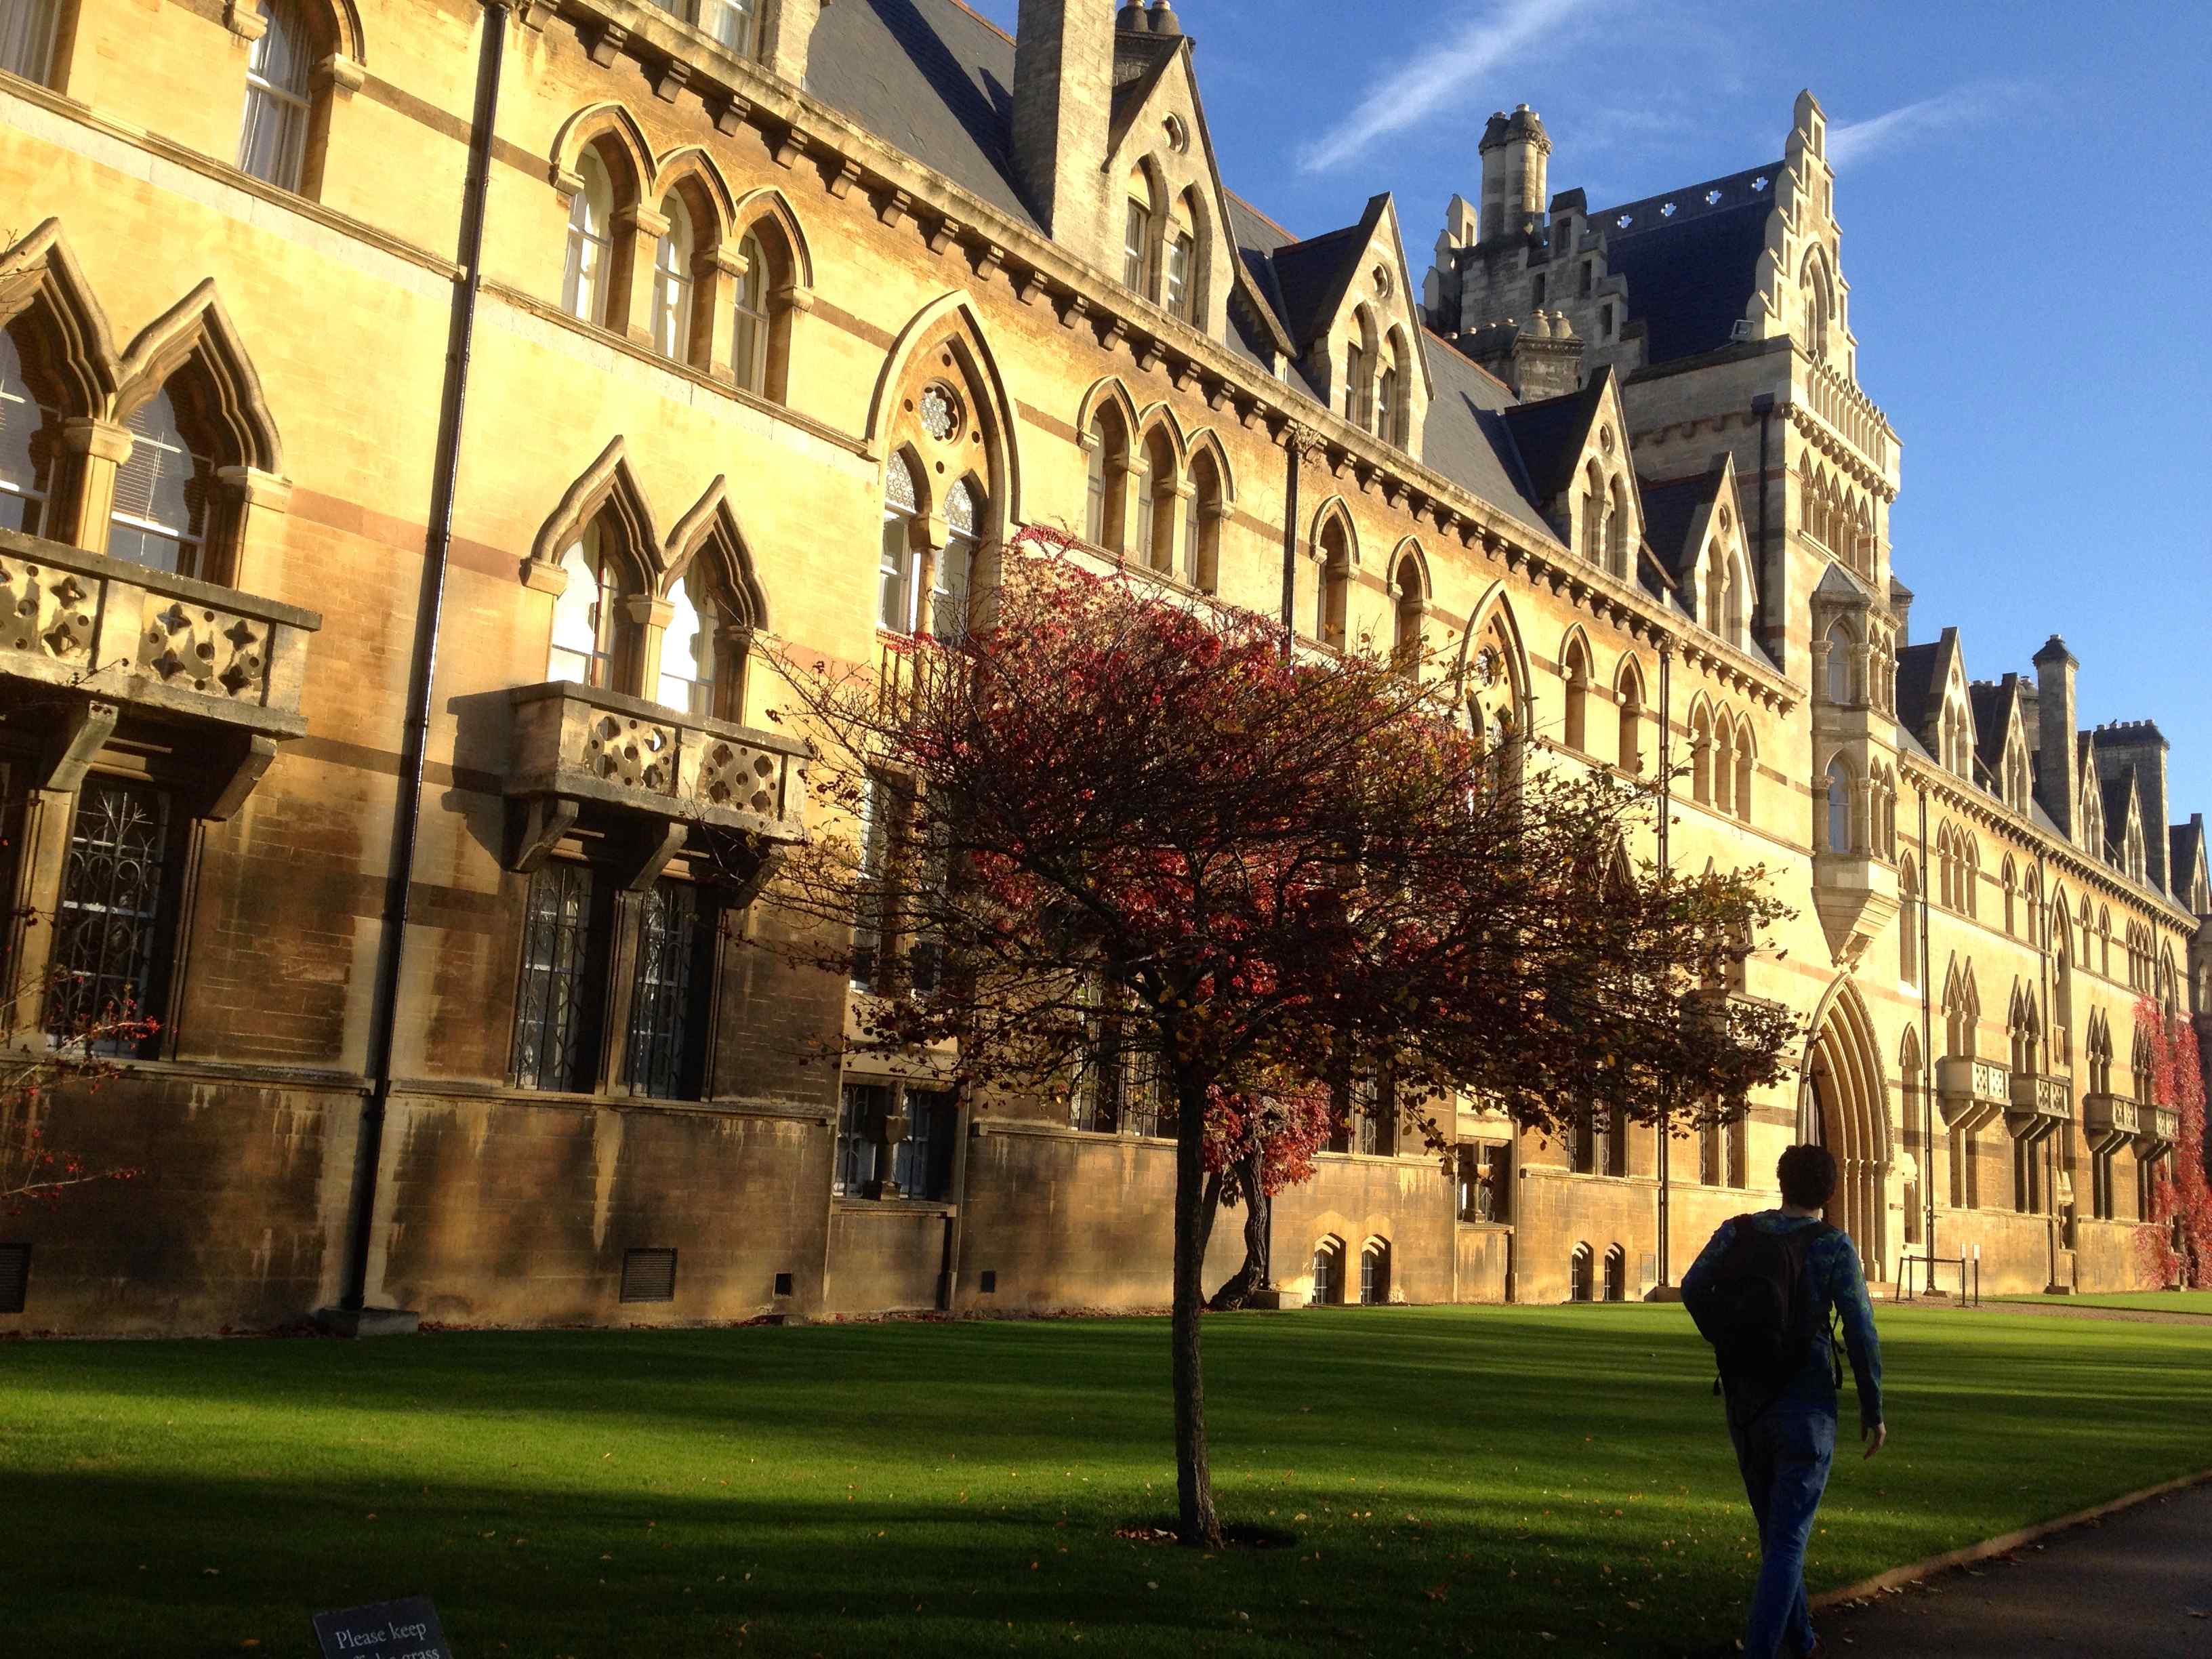 Ontdek De Betoverende Colleges In Oxford Vive Le Voyage Oxoford Christ Church